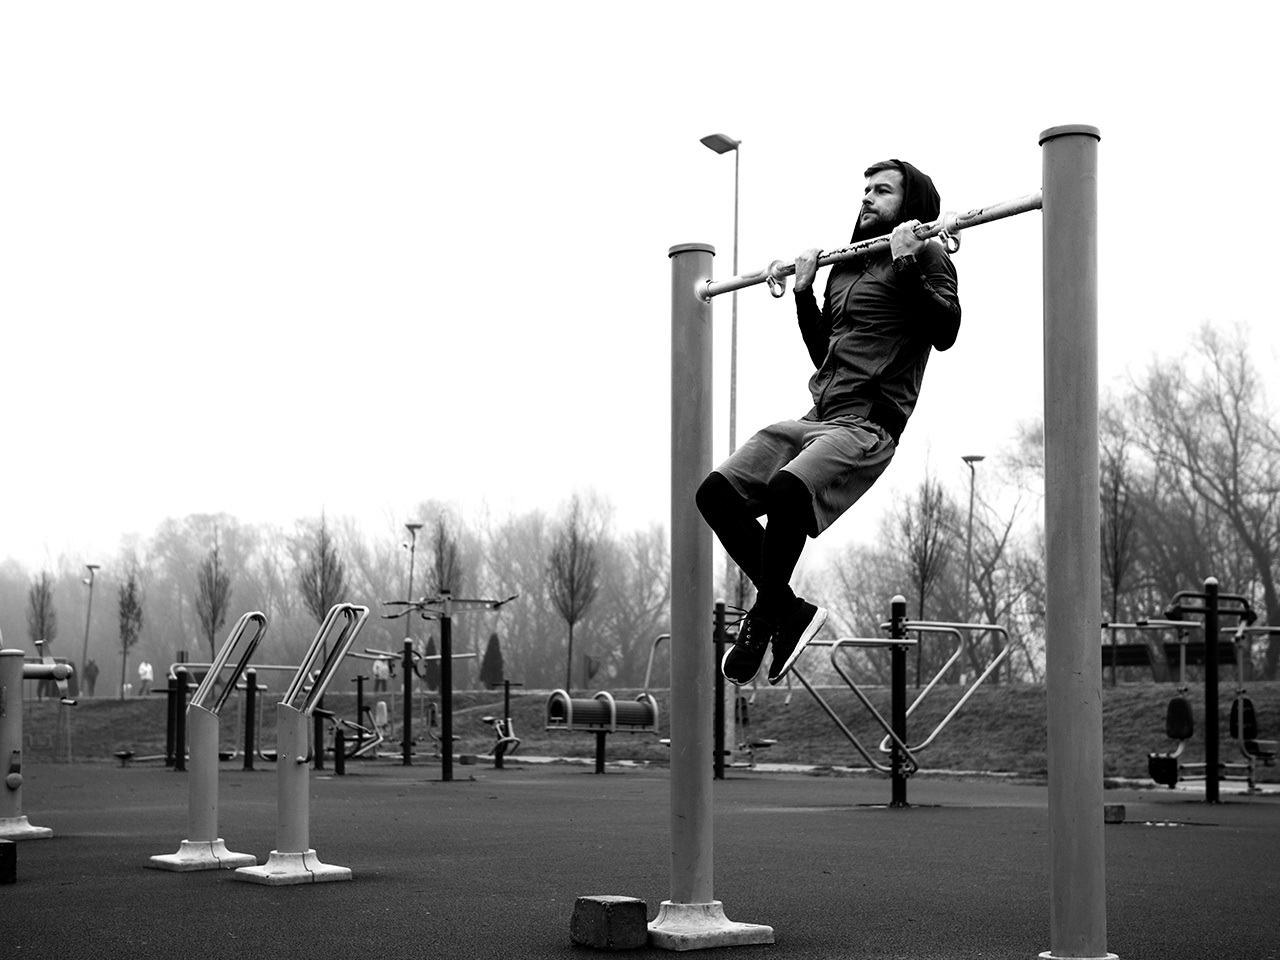 Man doing chin-ups in a park designed for workouts